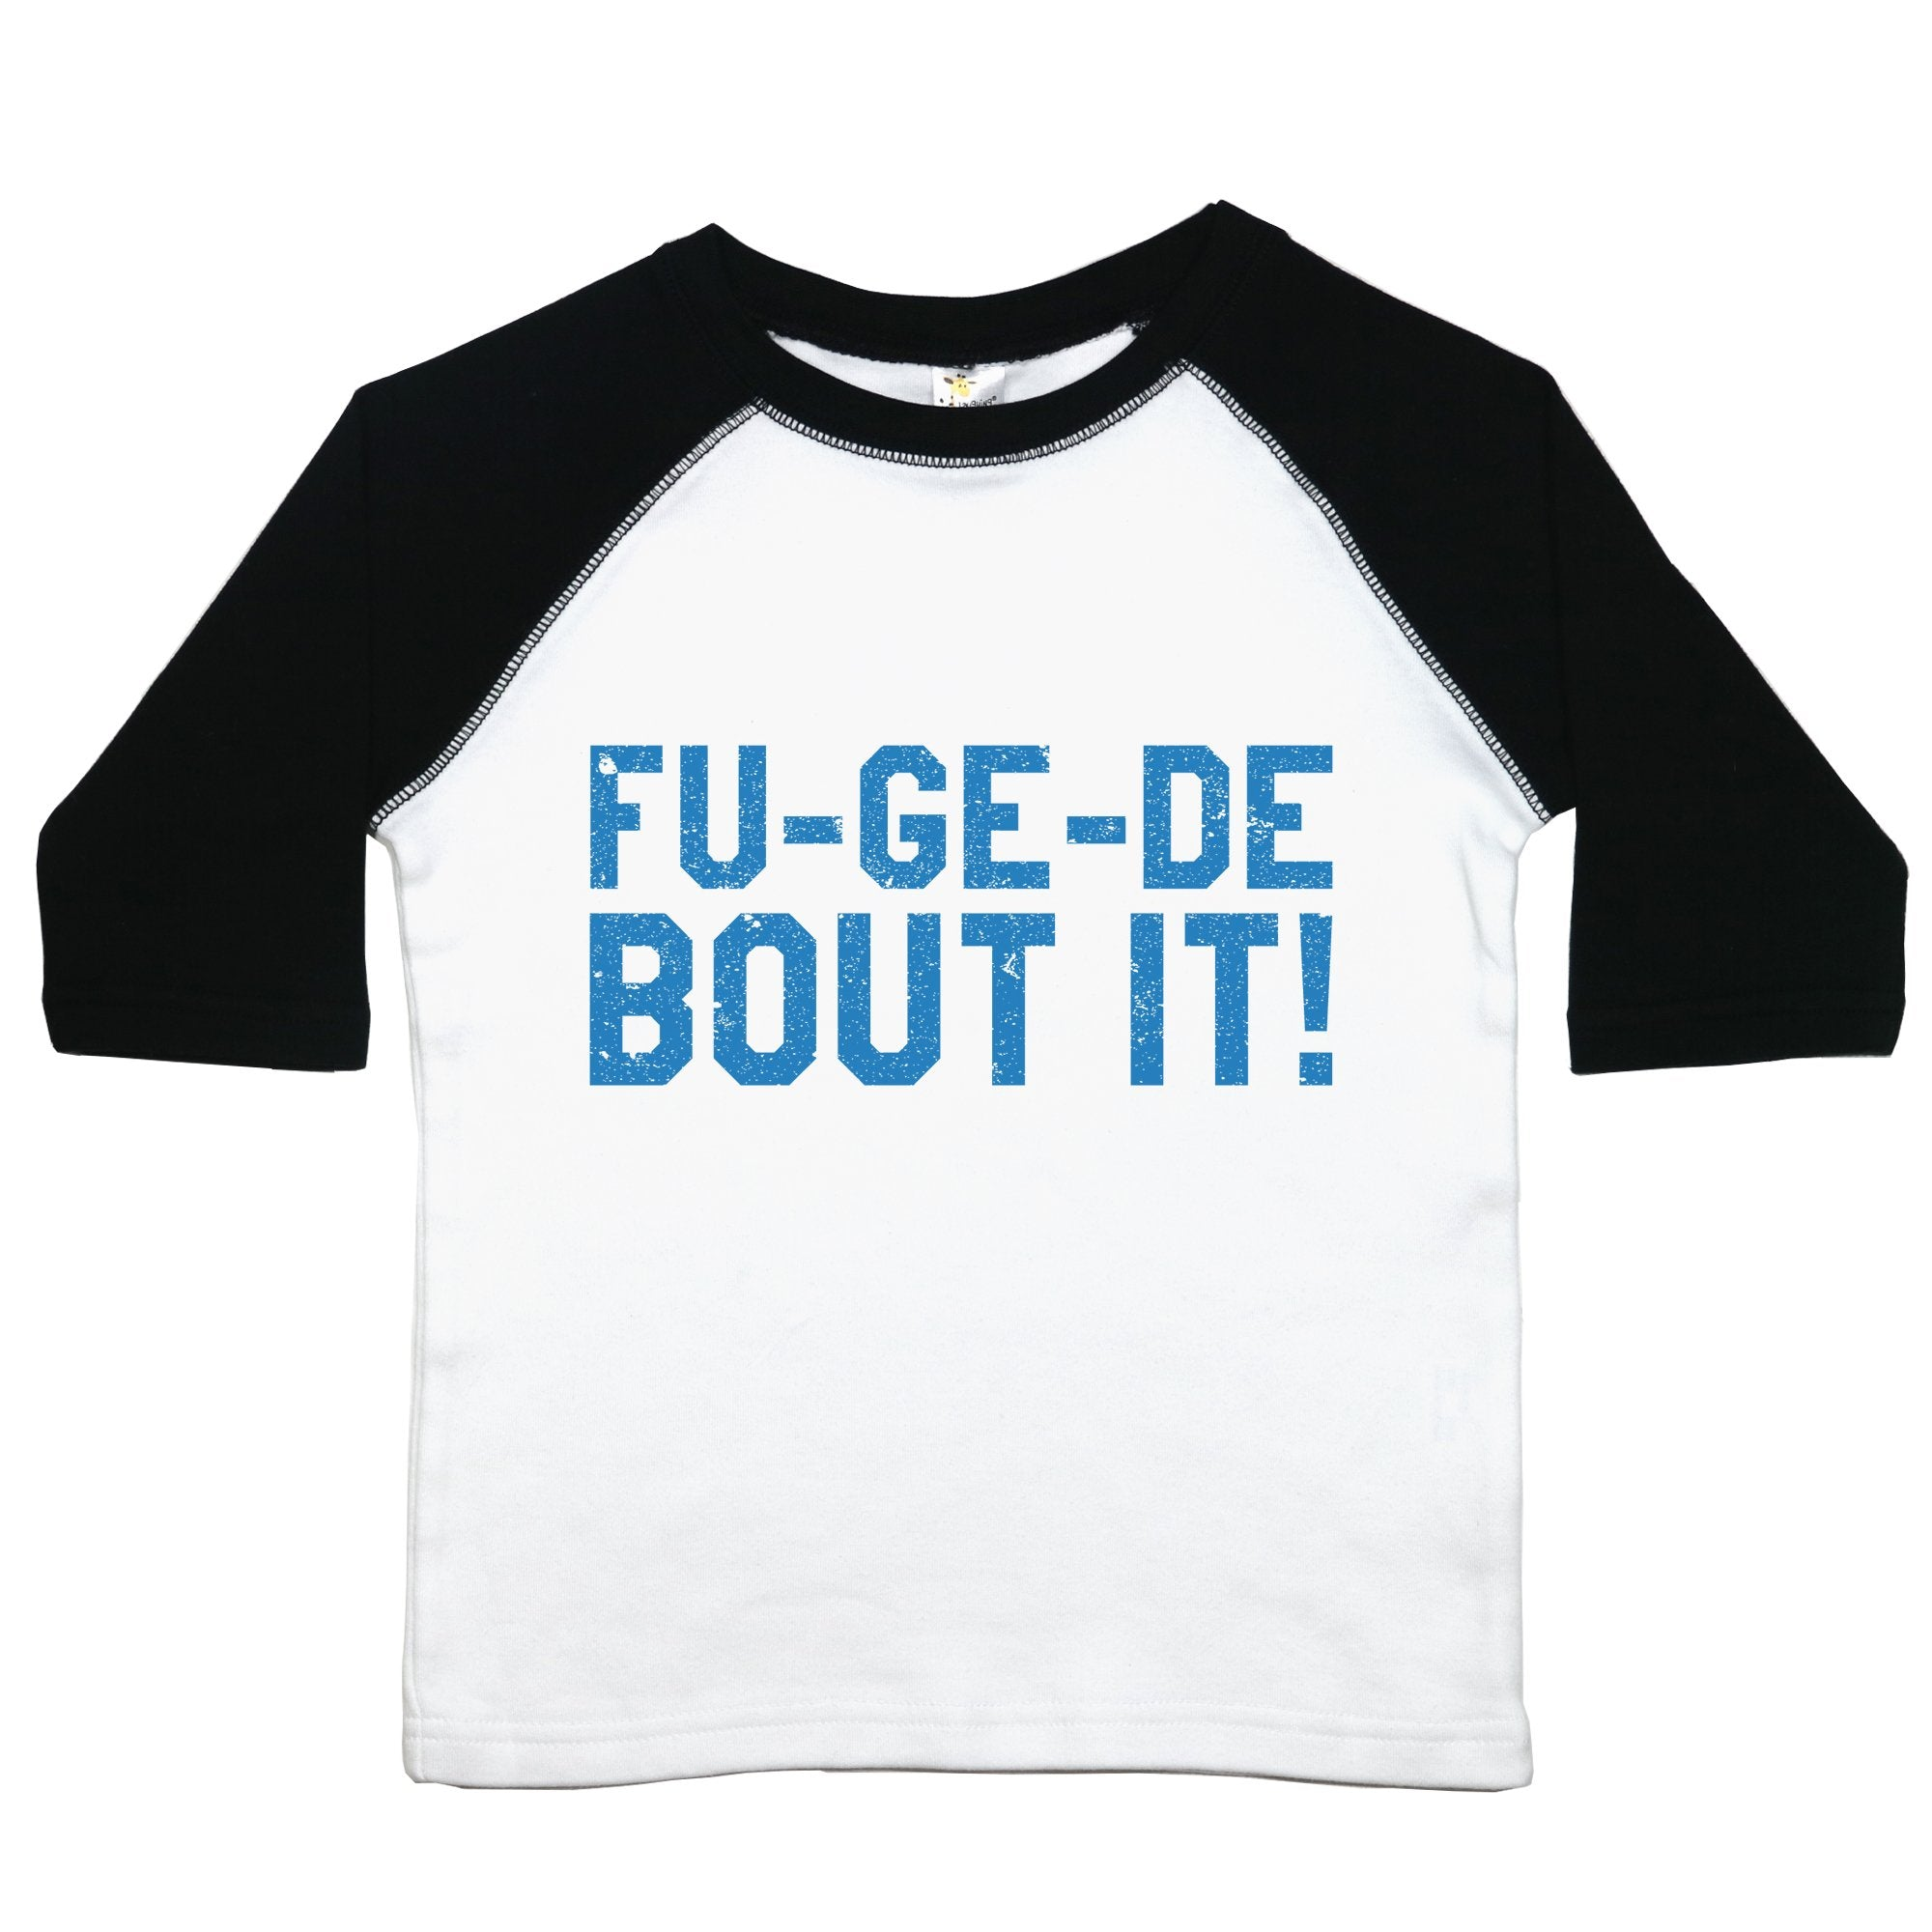 "A baseball style toddler tee with the text ""fu-ge-de-bout-it"""